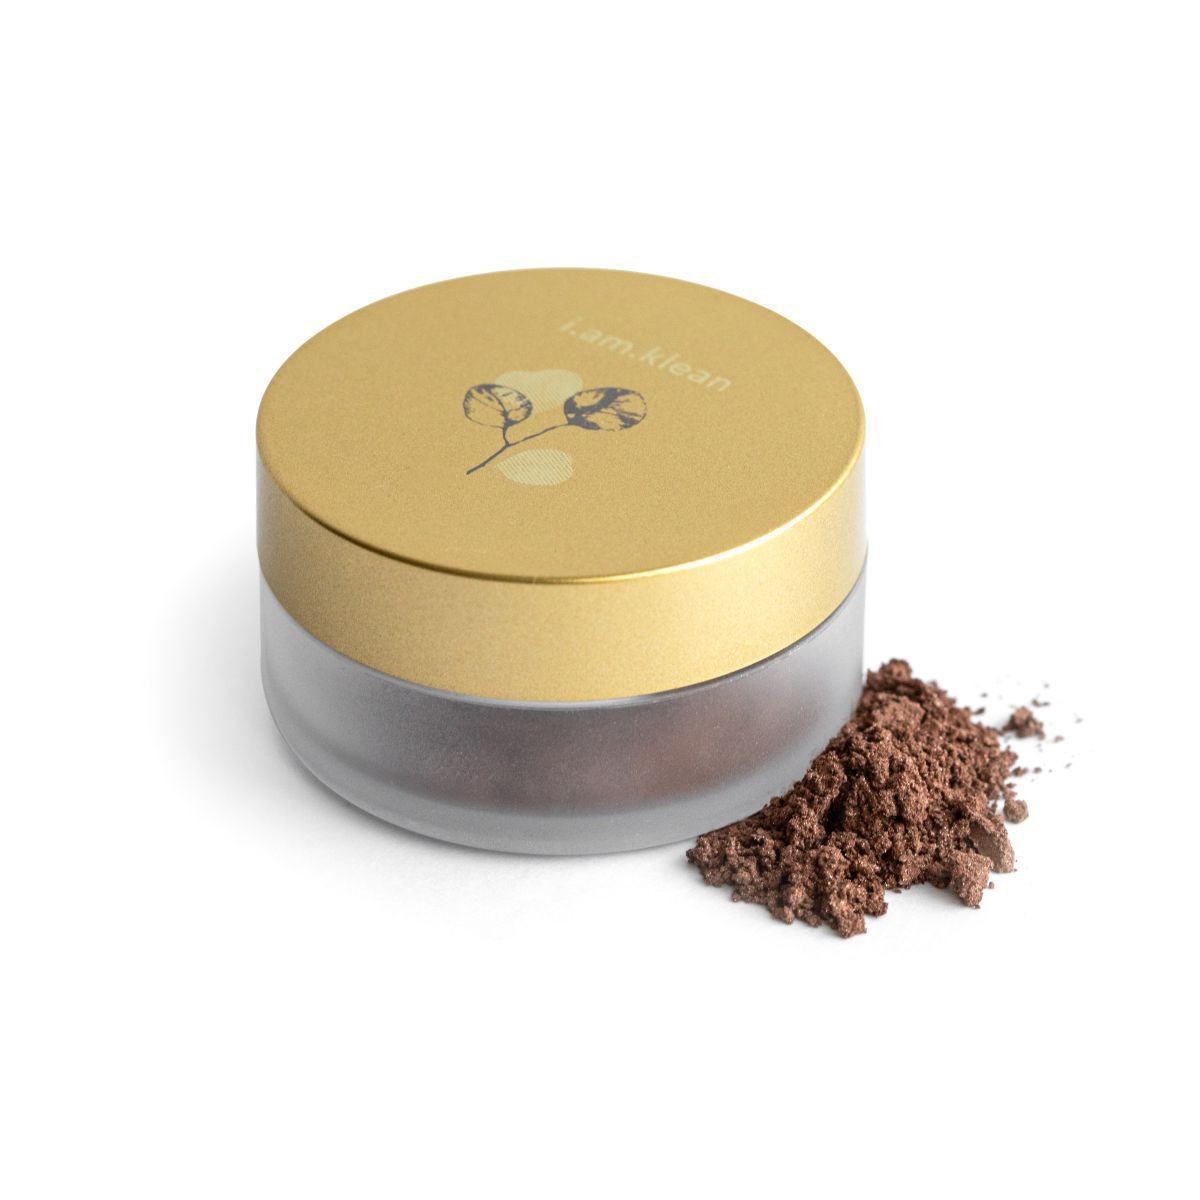 iamklean loose eyeshadow potje perfect storm highres witte achtergrond 9